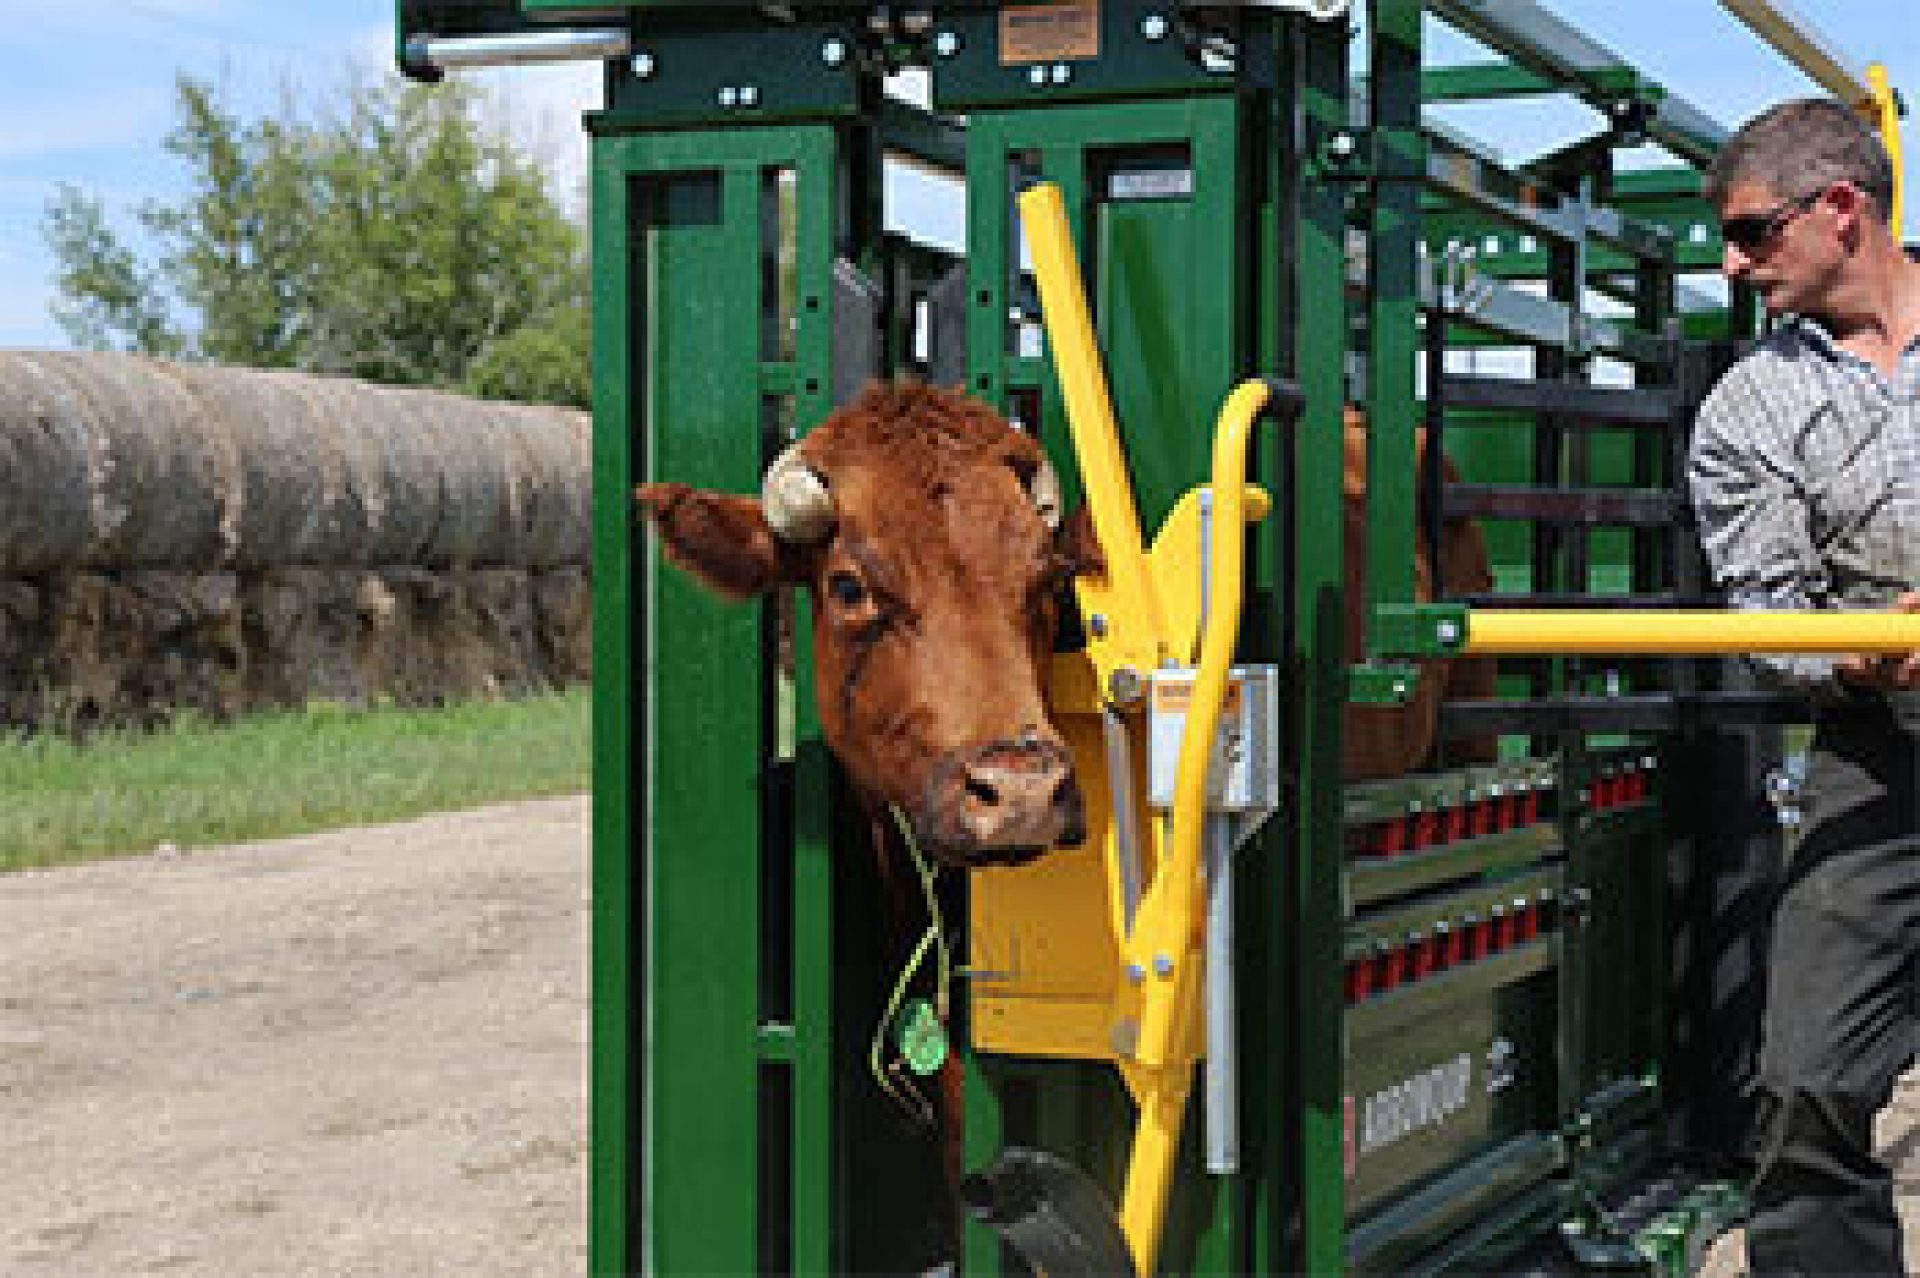 Squeezing cow in chute